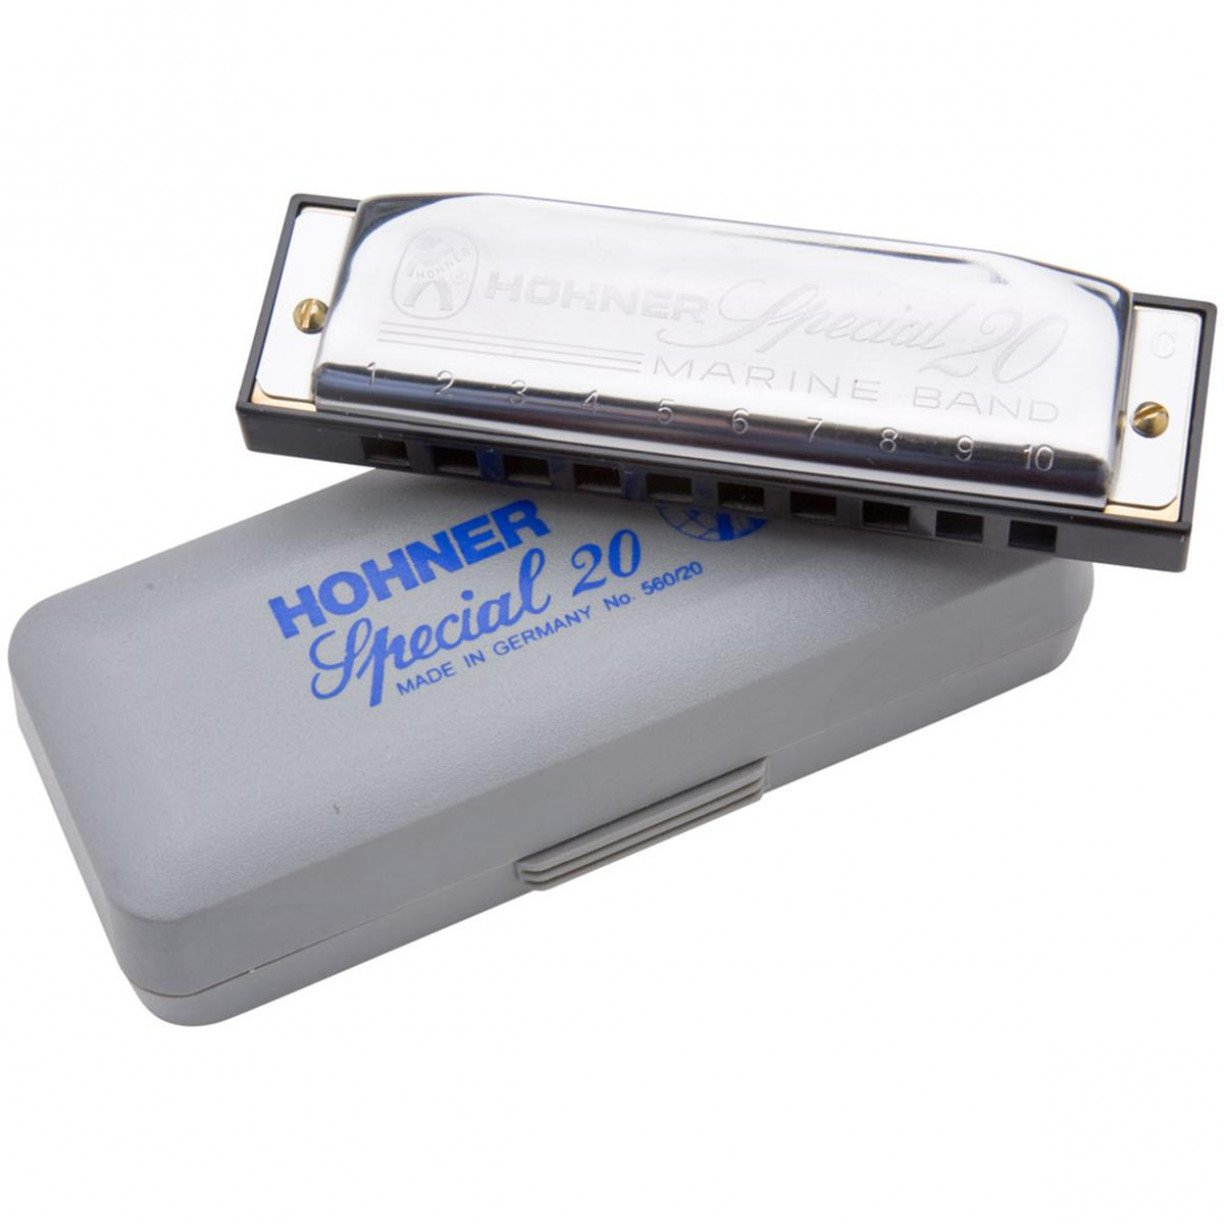 Kit Harmonica Special 20 - C, G, A - HOHNER